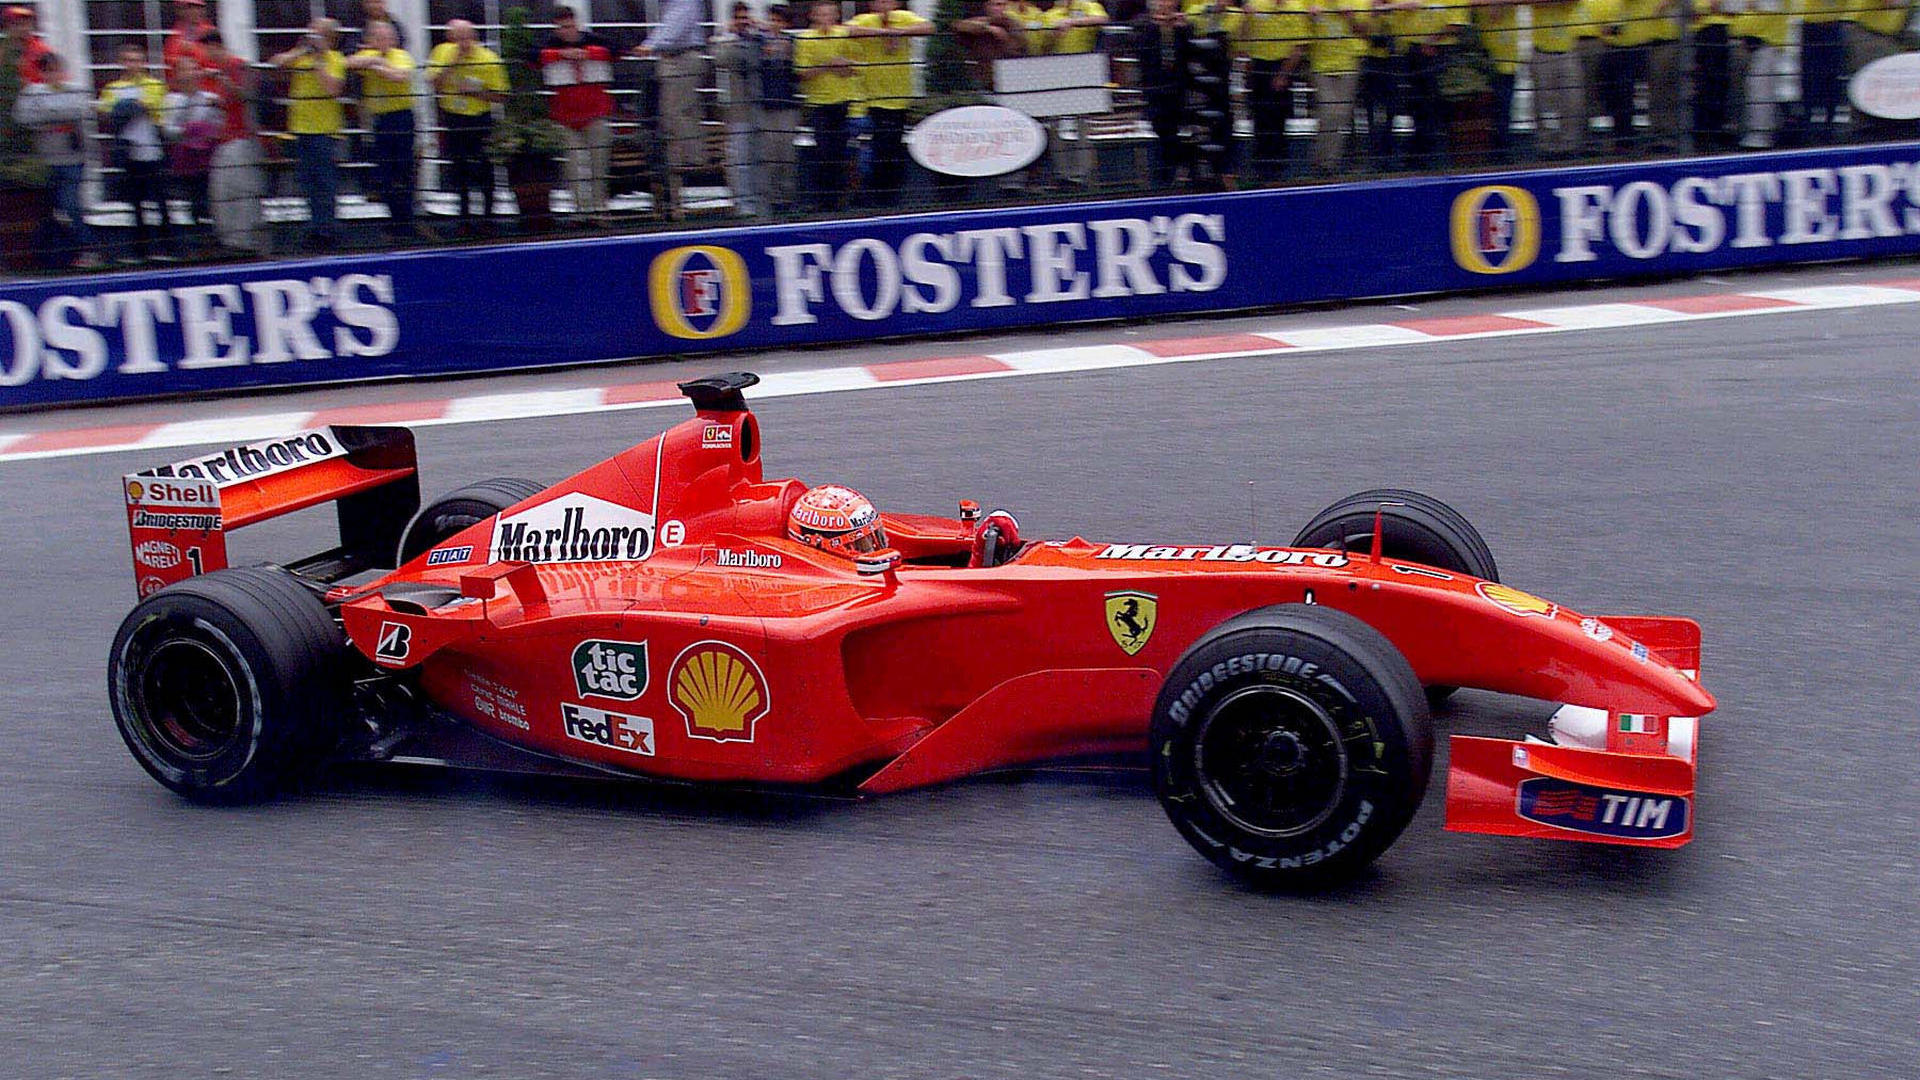 ferrari f2001 michael schumacher - photo #13